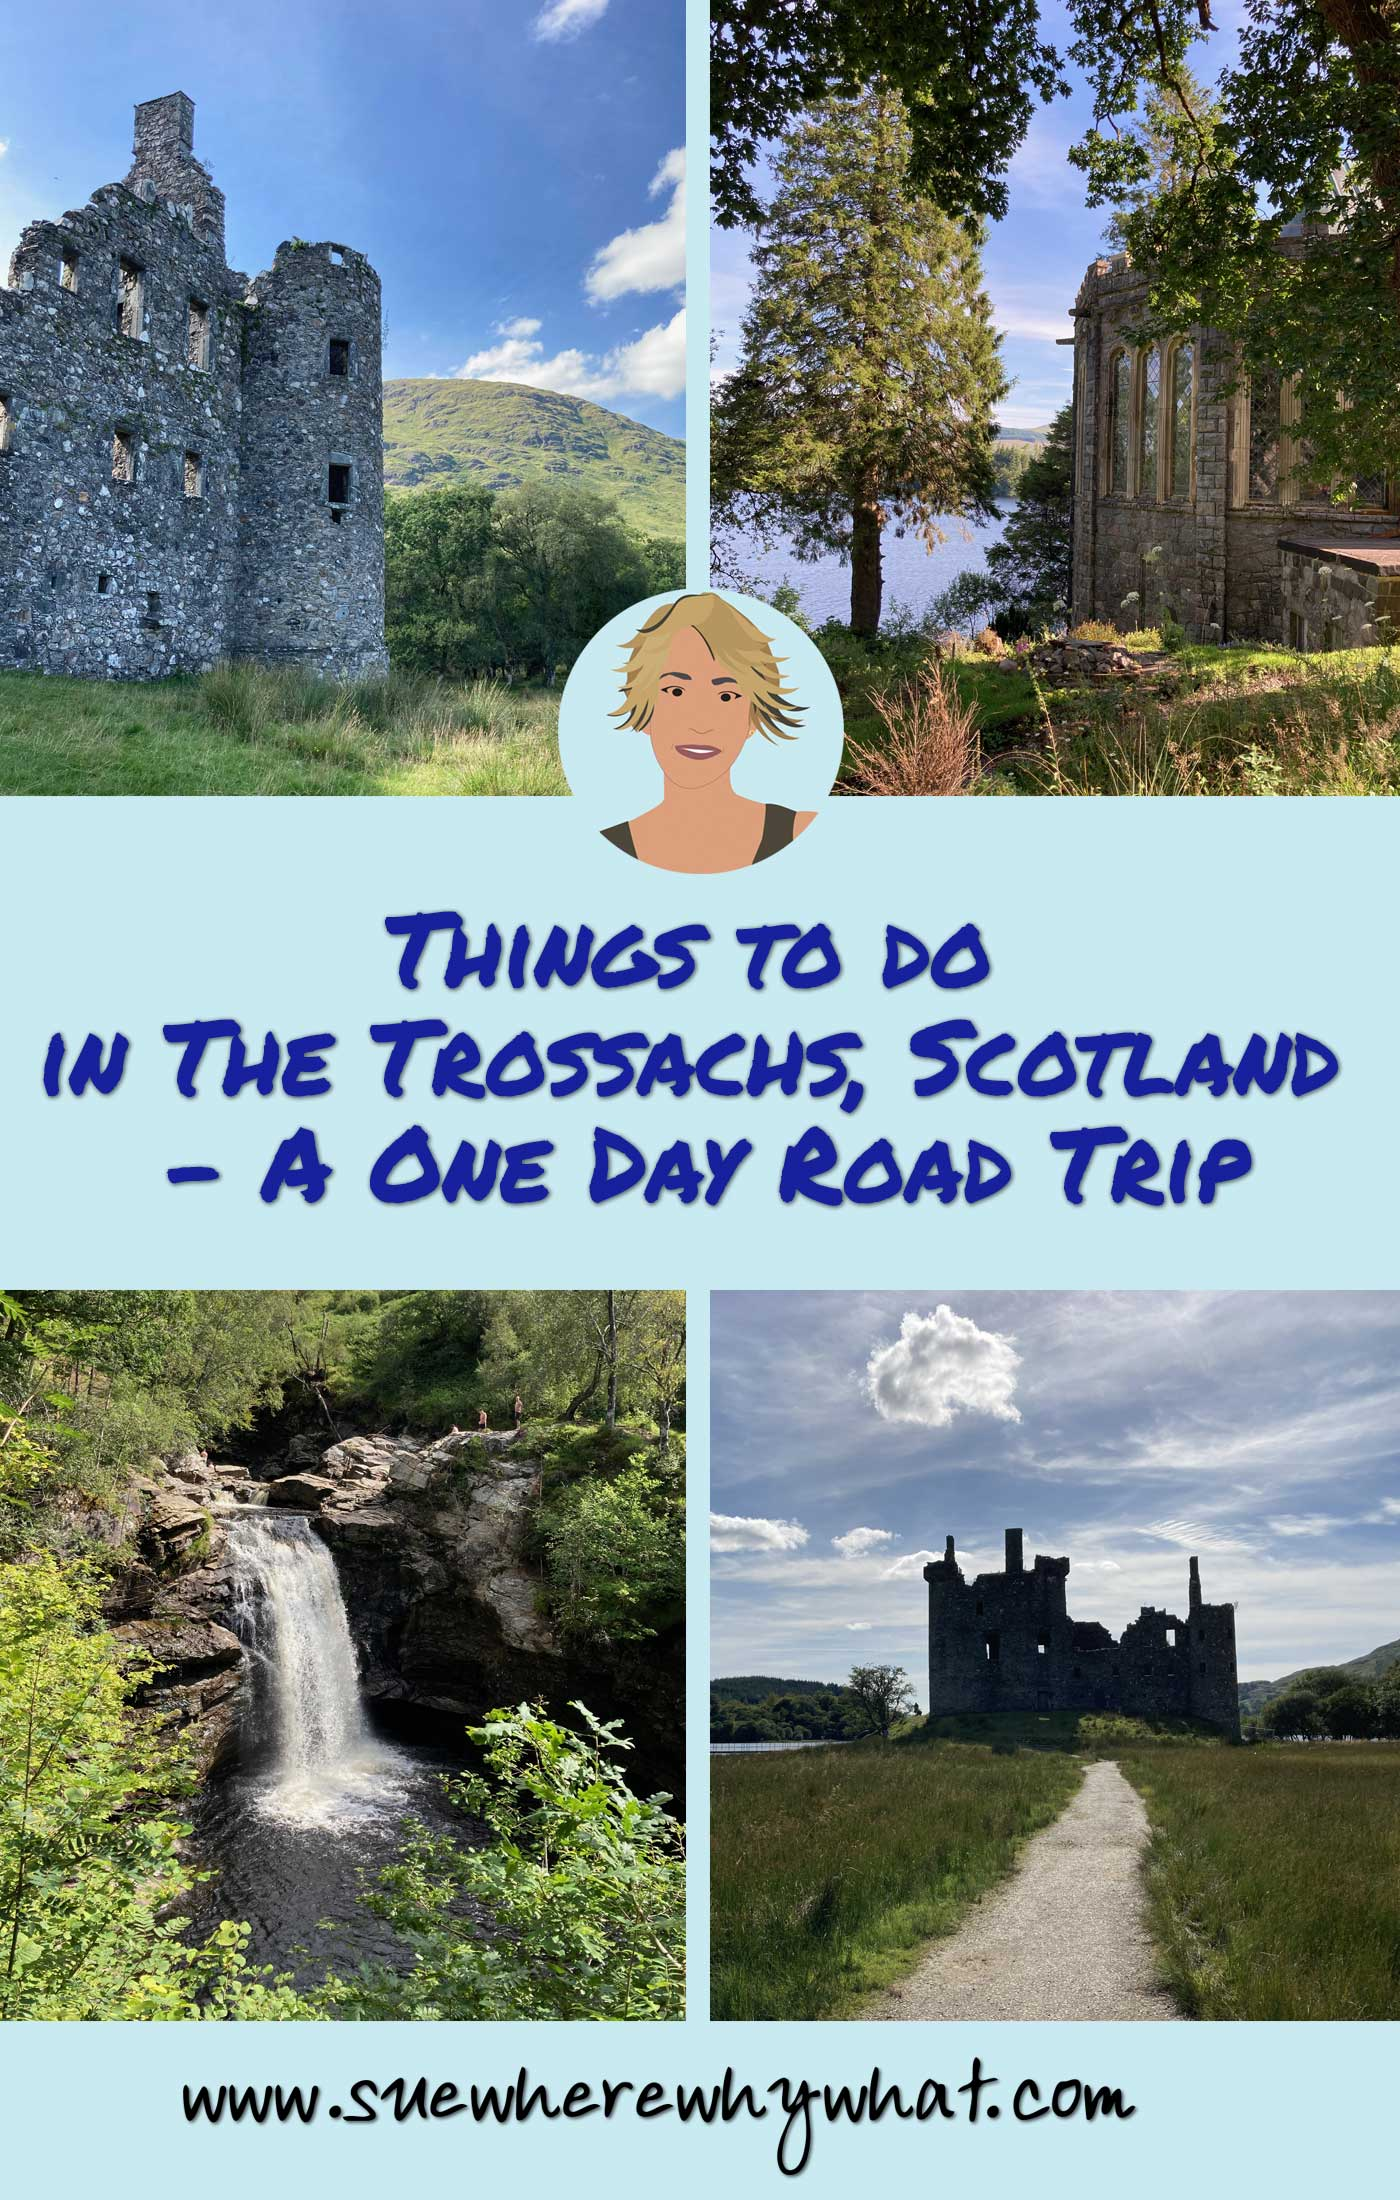 Things to do in The Trossachs – A One Day Road Trip